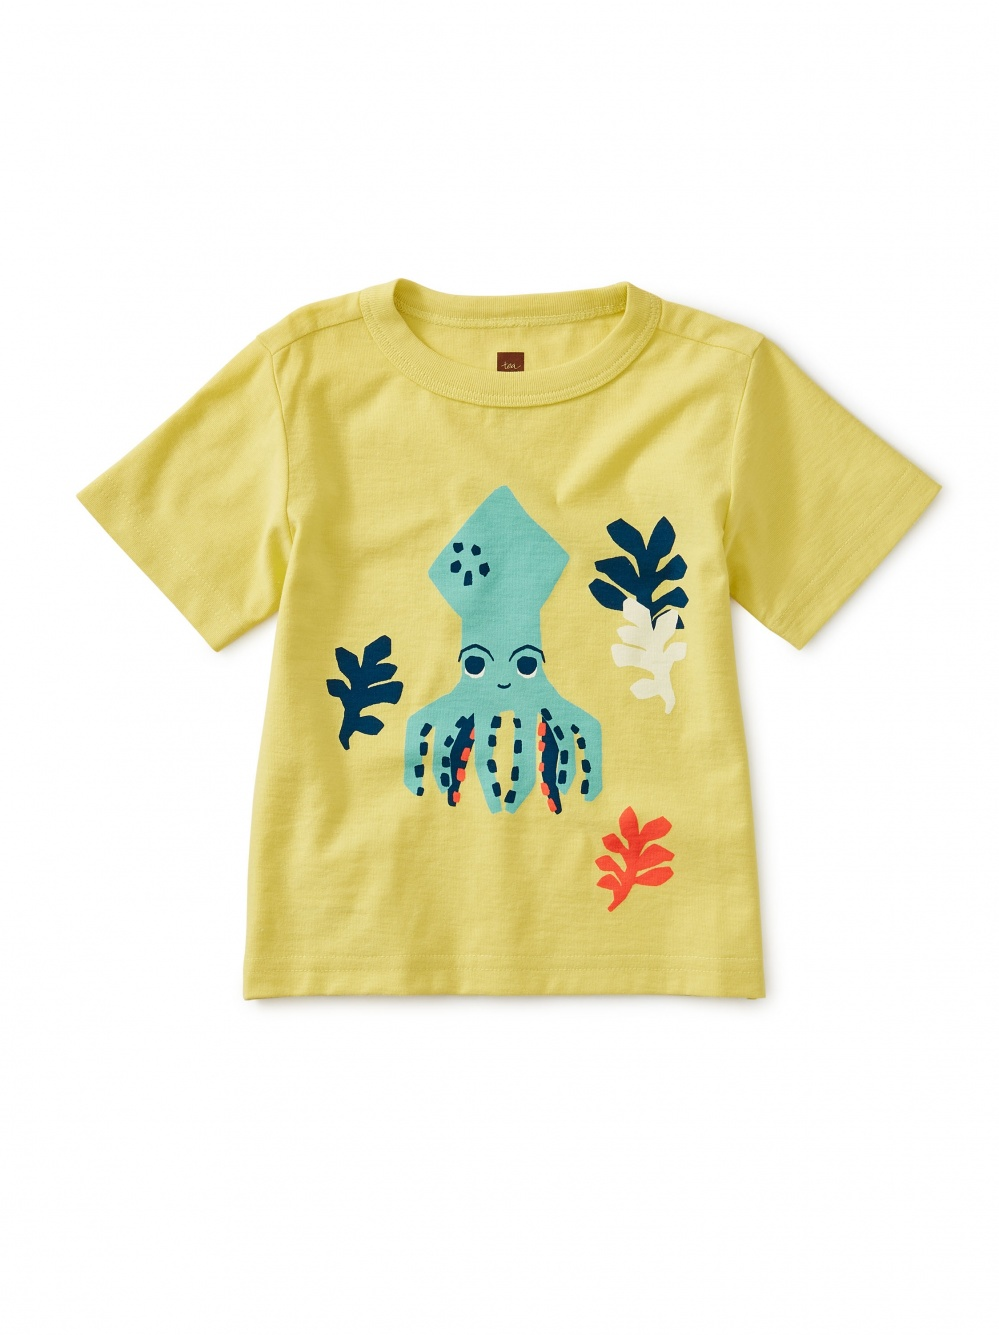 Octopus Baby Graphic Tee